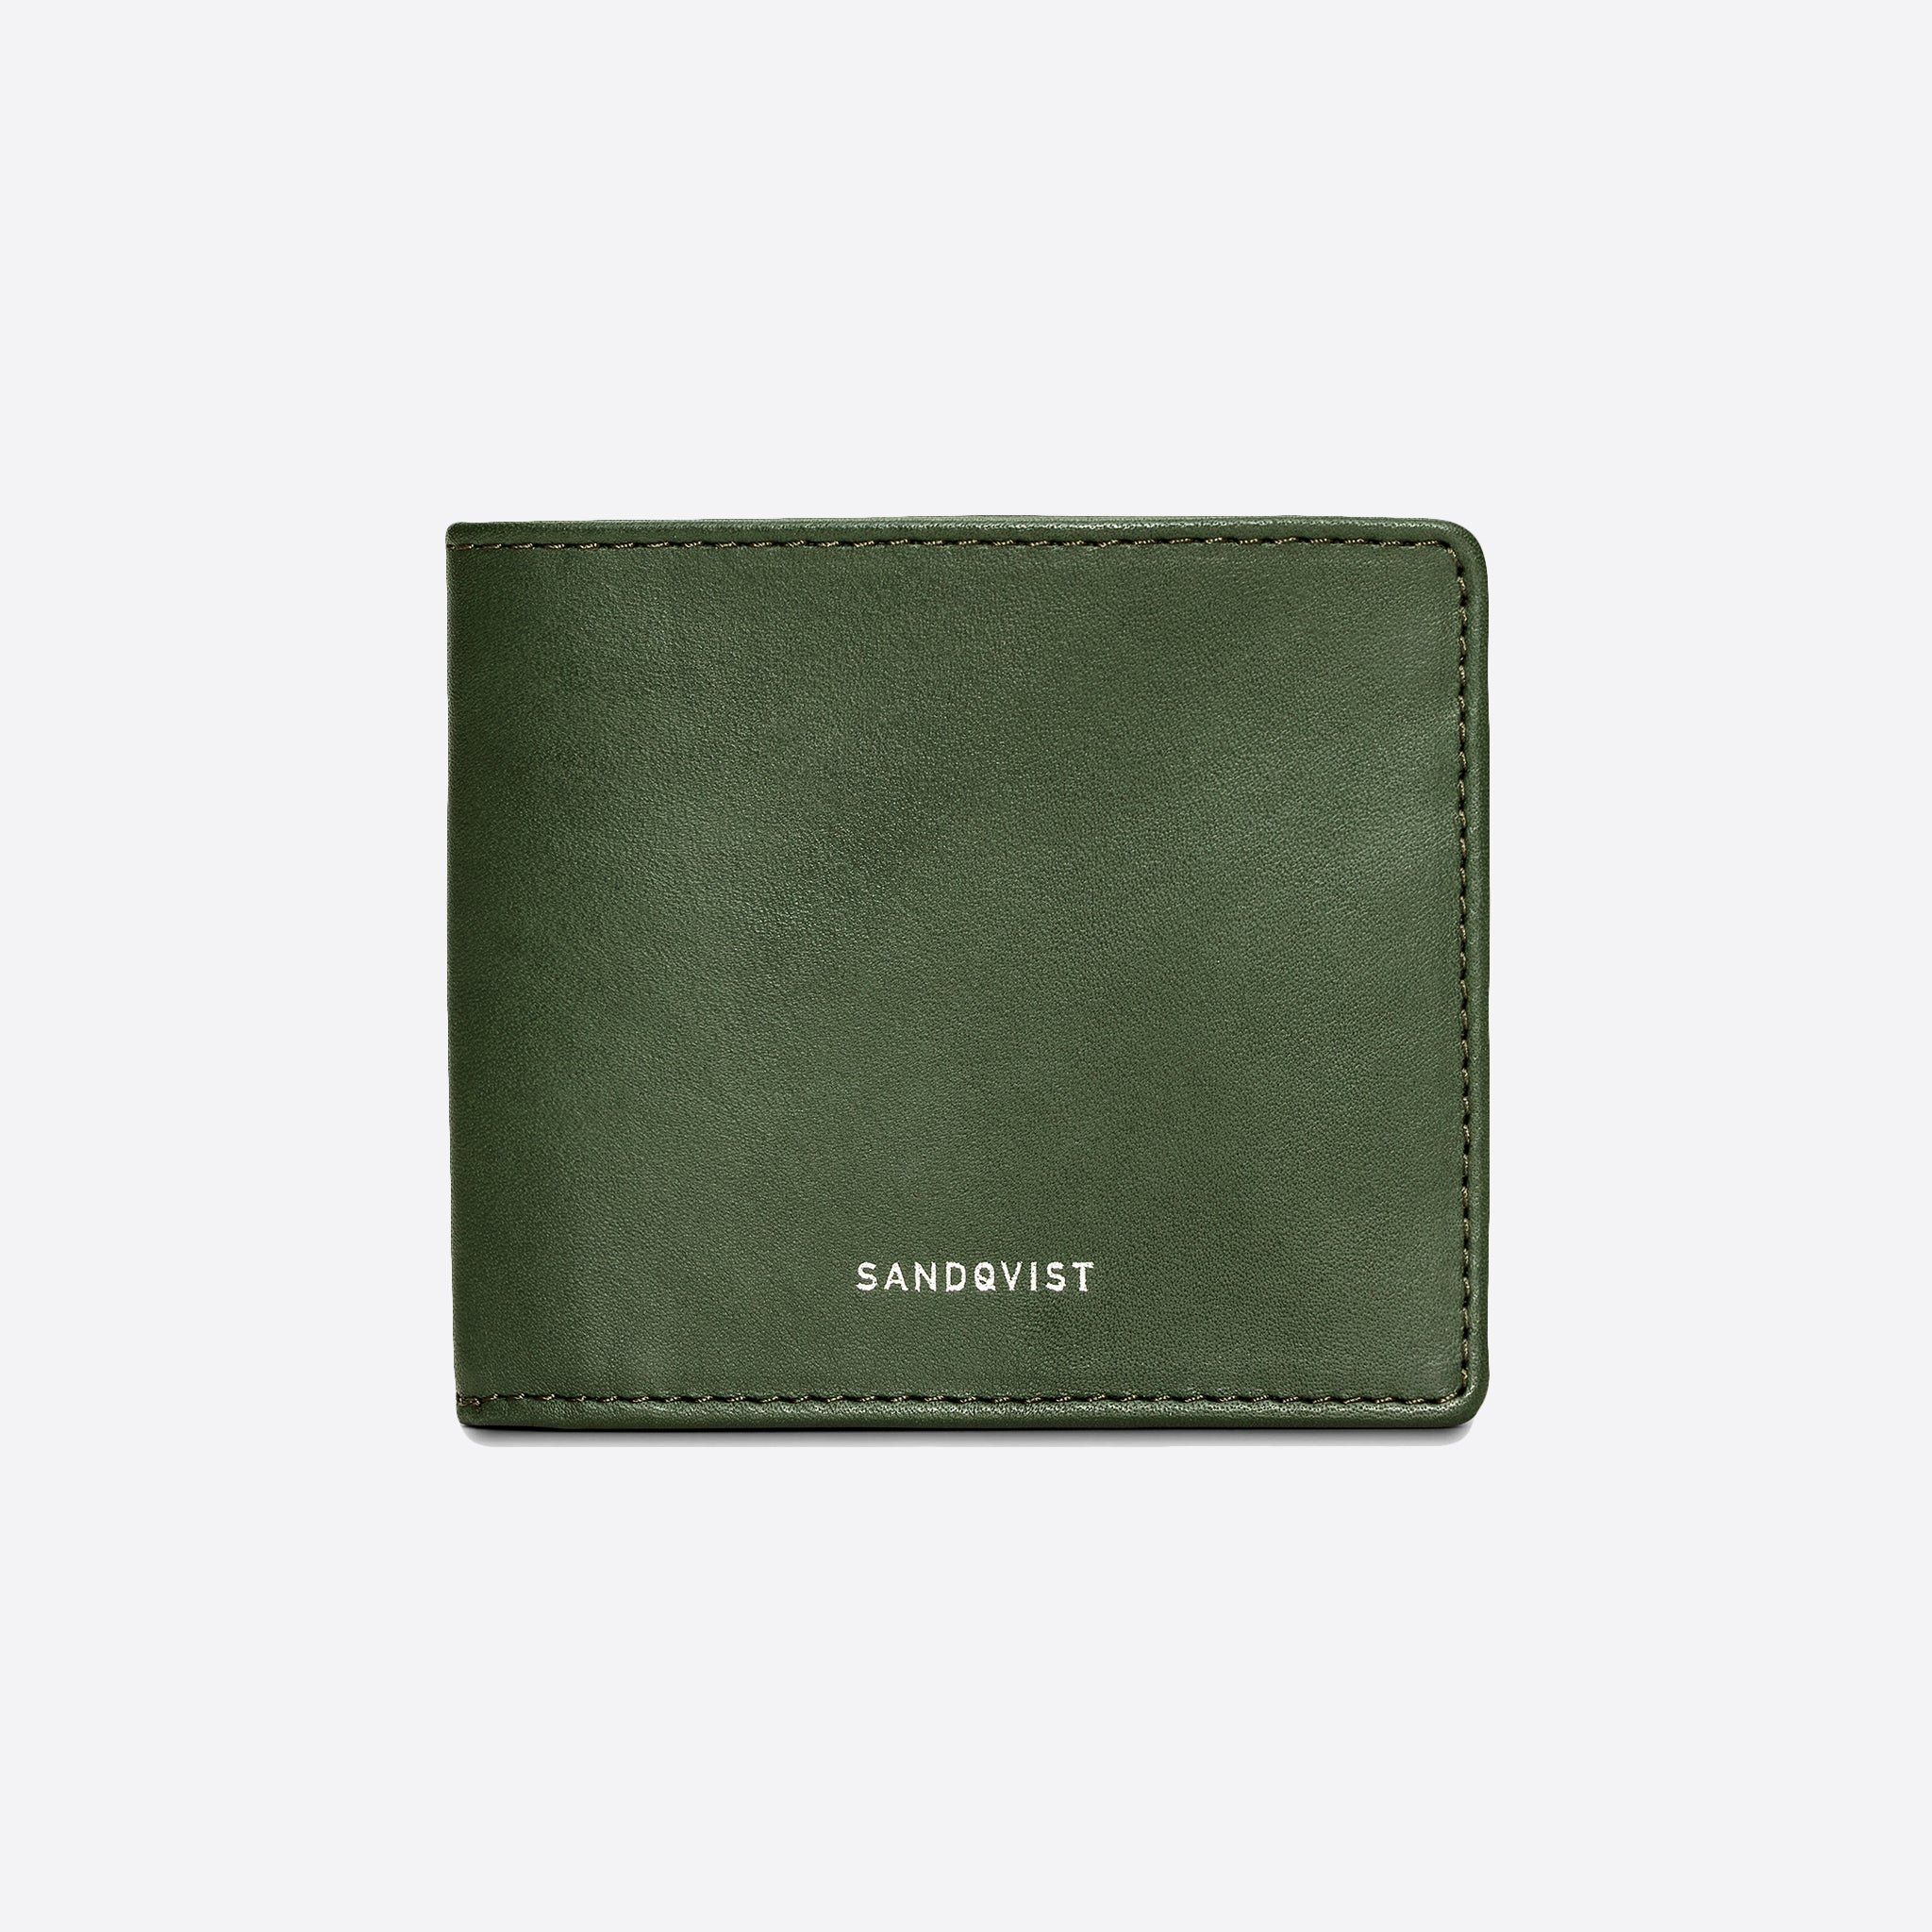 Sandqvist Manfred Wallet in Green